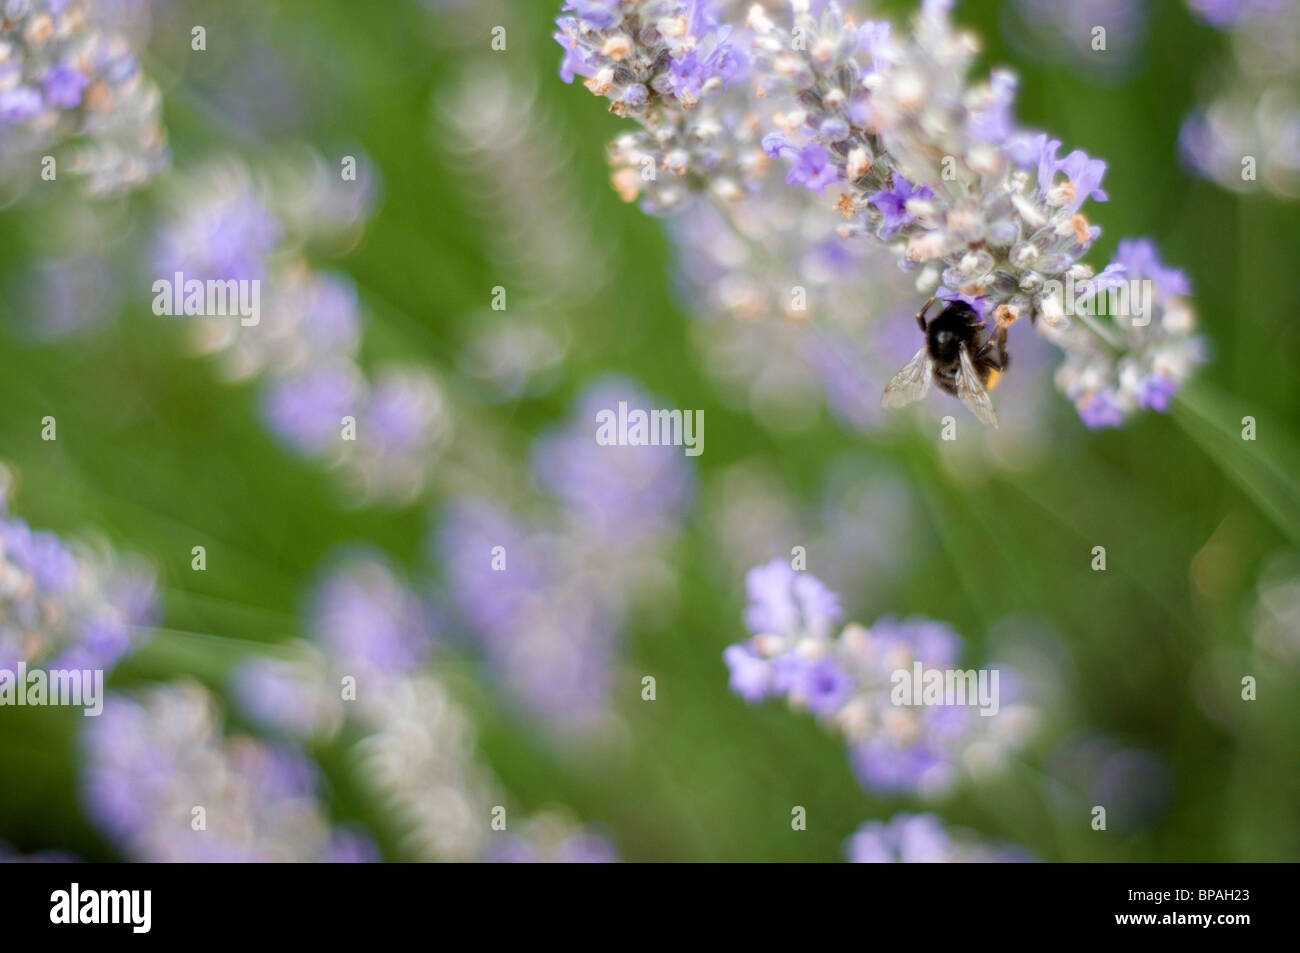 A close-up of a bumble bee on a lavender flower. A shallow depth of field creating a blurred background - Stock Image